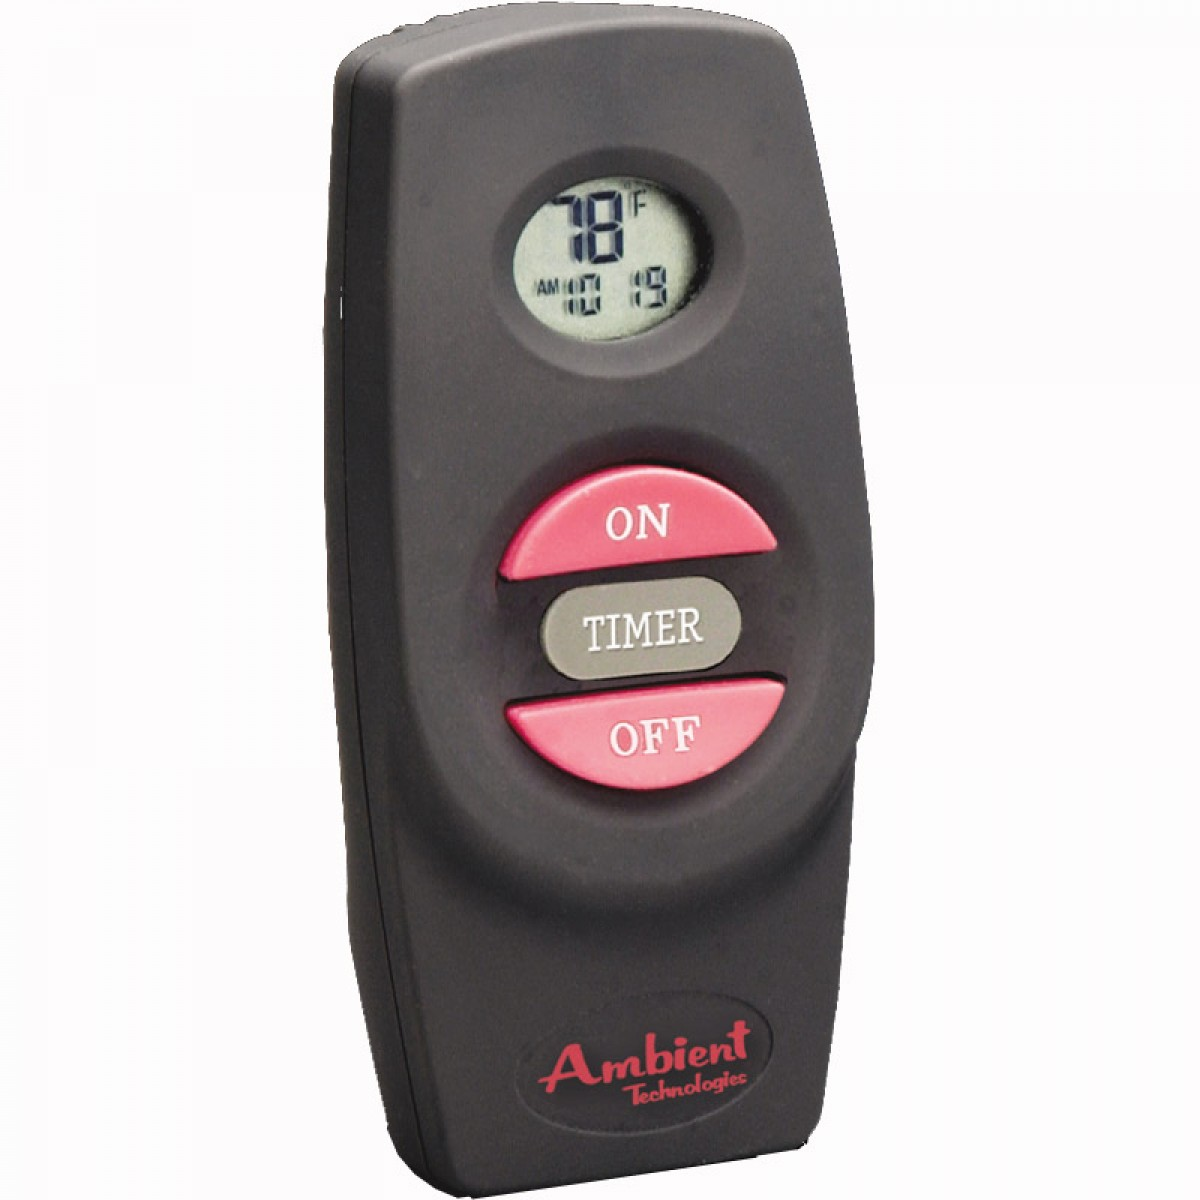 Ambient Technologies Rcmt Soft Touch Hand Held On Off With